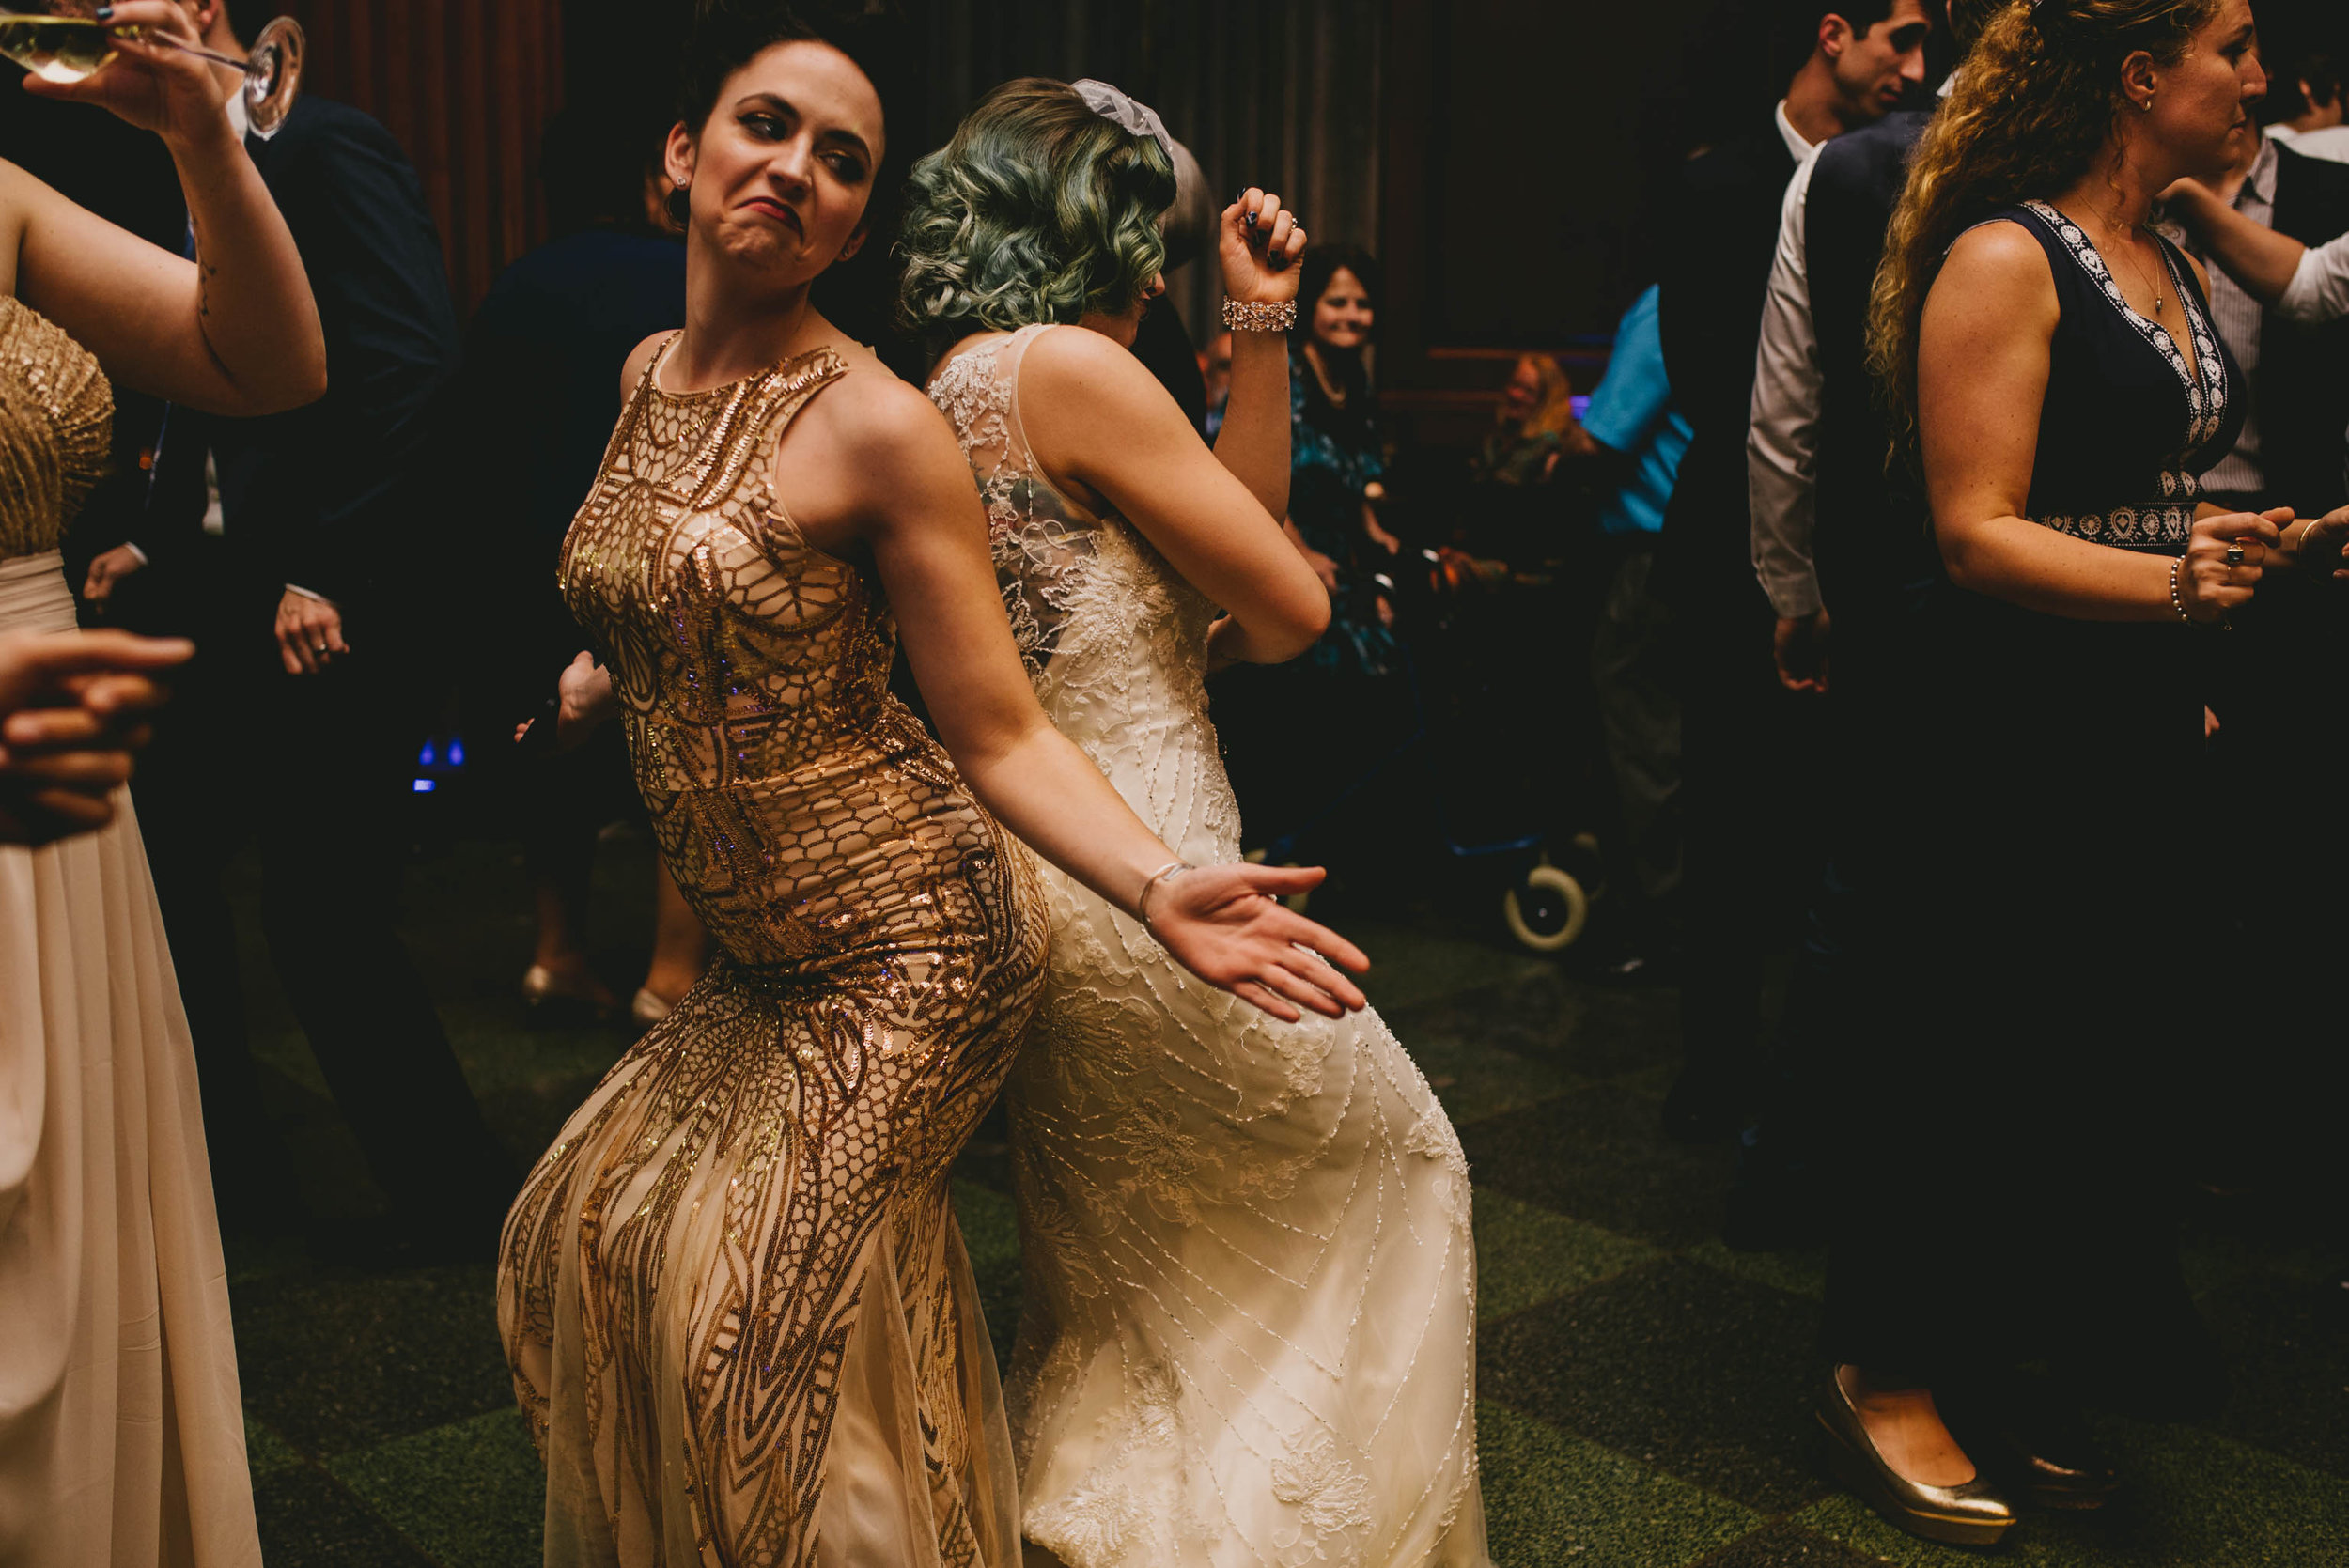 21c-hotel-durham-offbeat-wedding-dancing.jpg